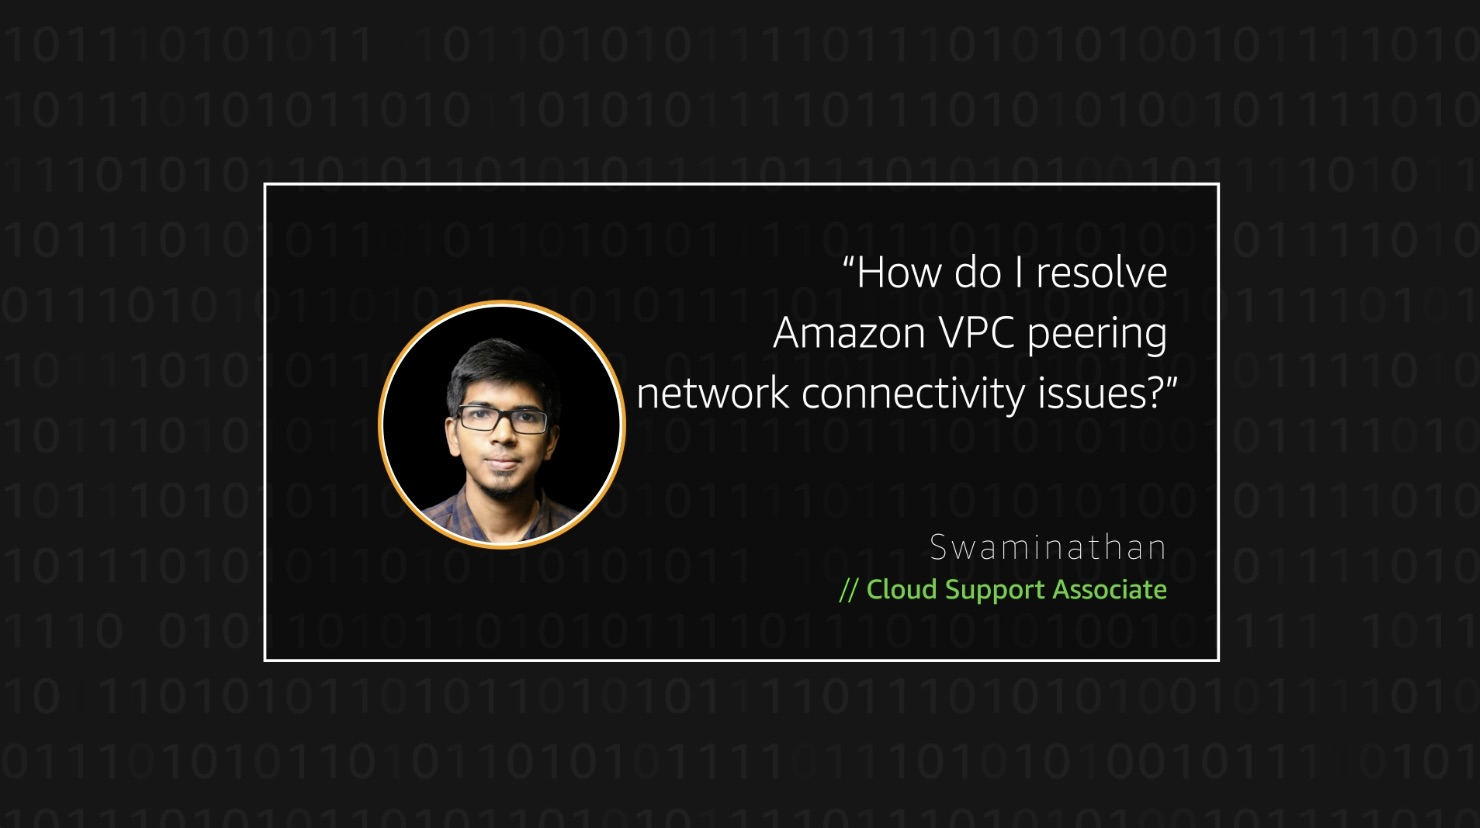 Watch Swaminathan's video to learn more